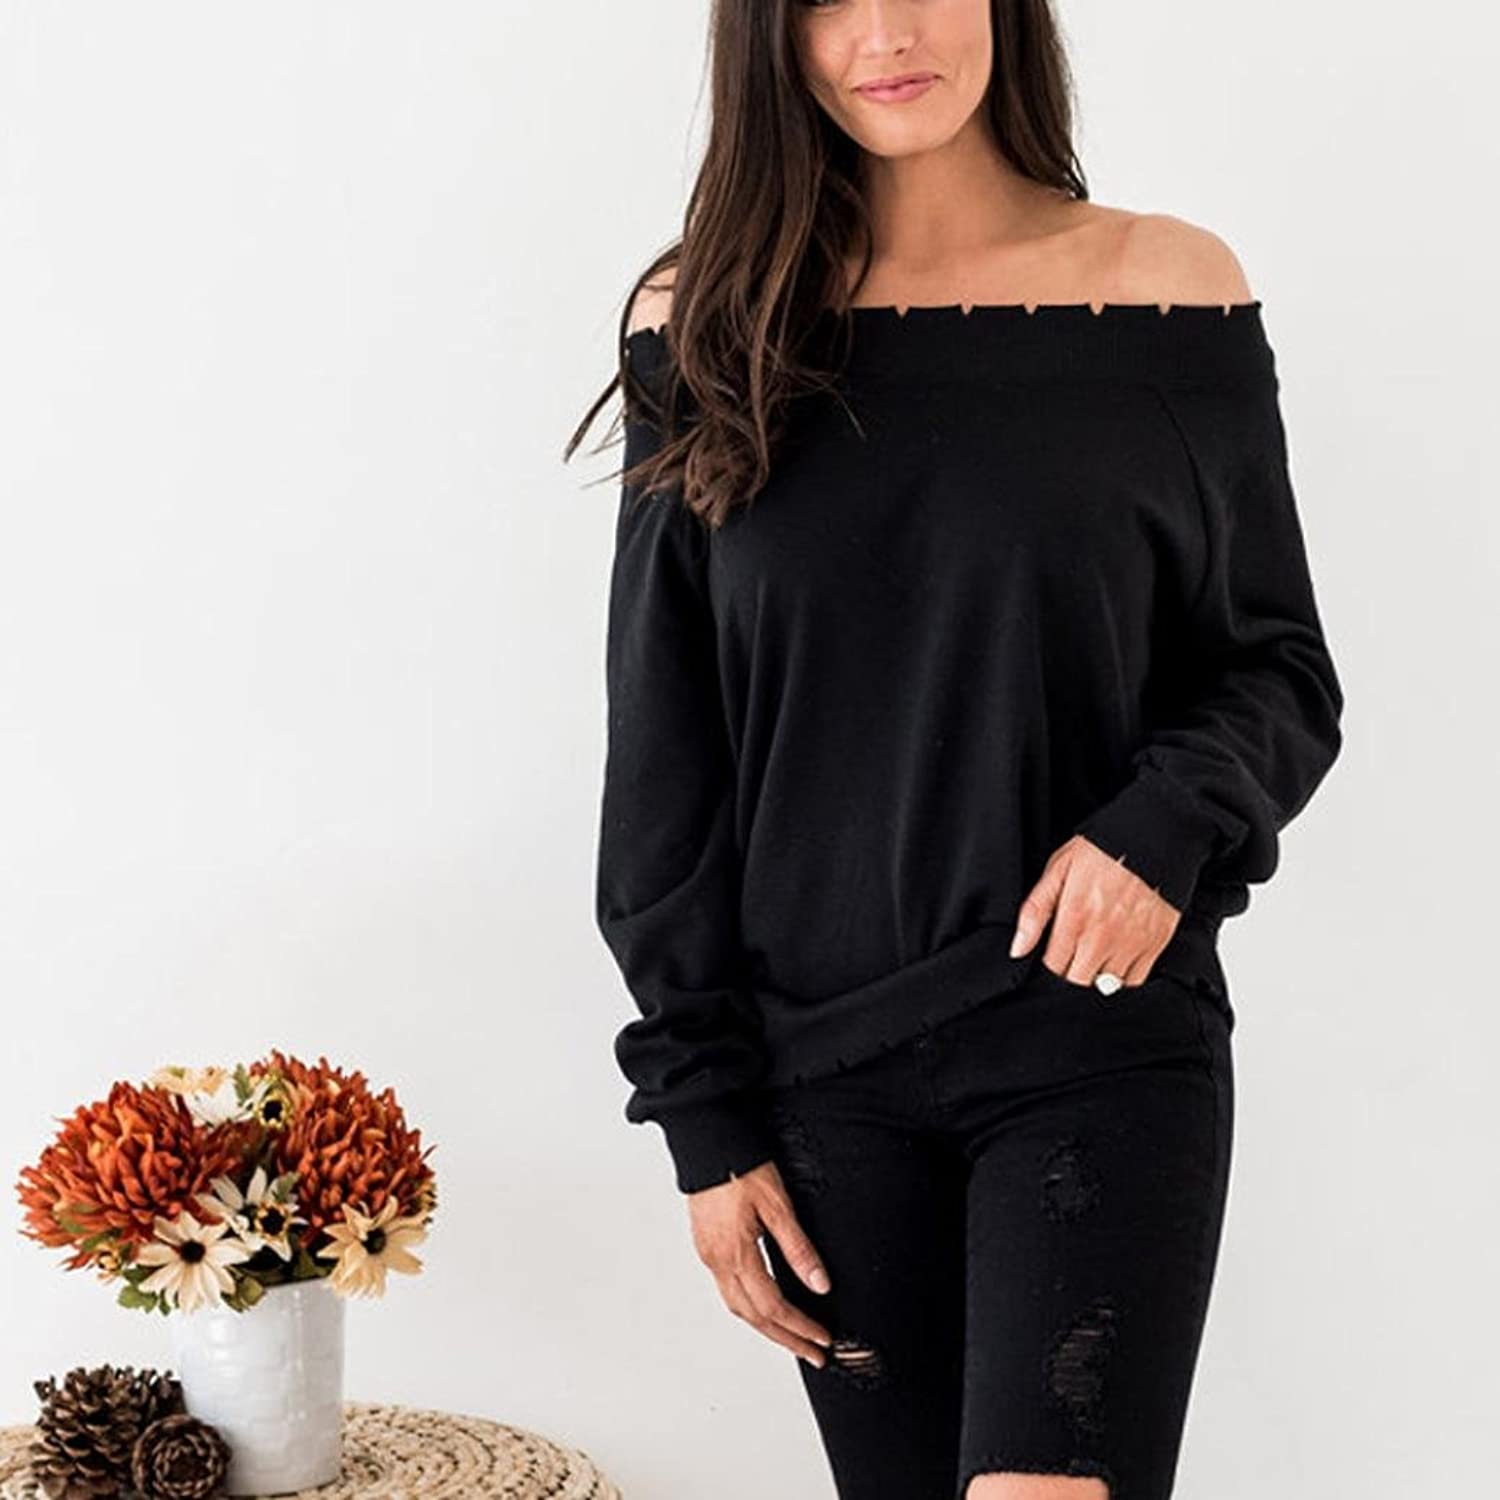 Overdose Women Top Solid Off Shoulder Long Sleeve T-Shirt Blouse:  Amazon.co.uk: Clothing